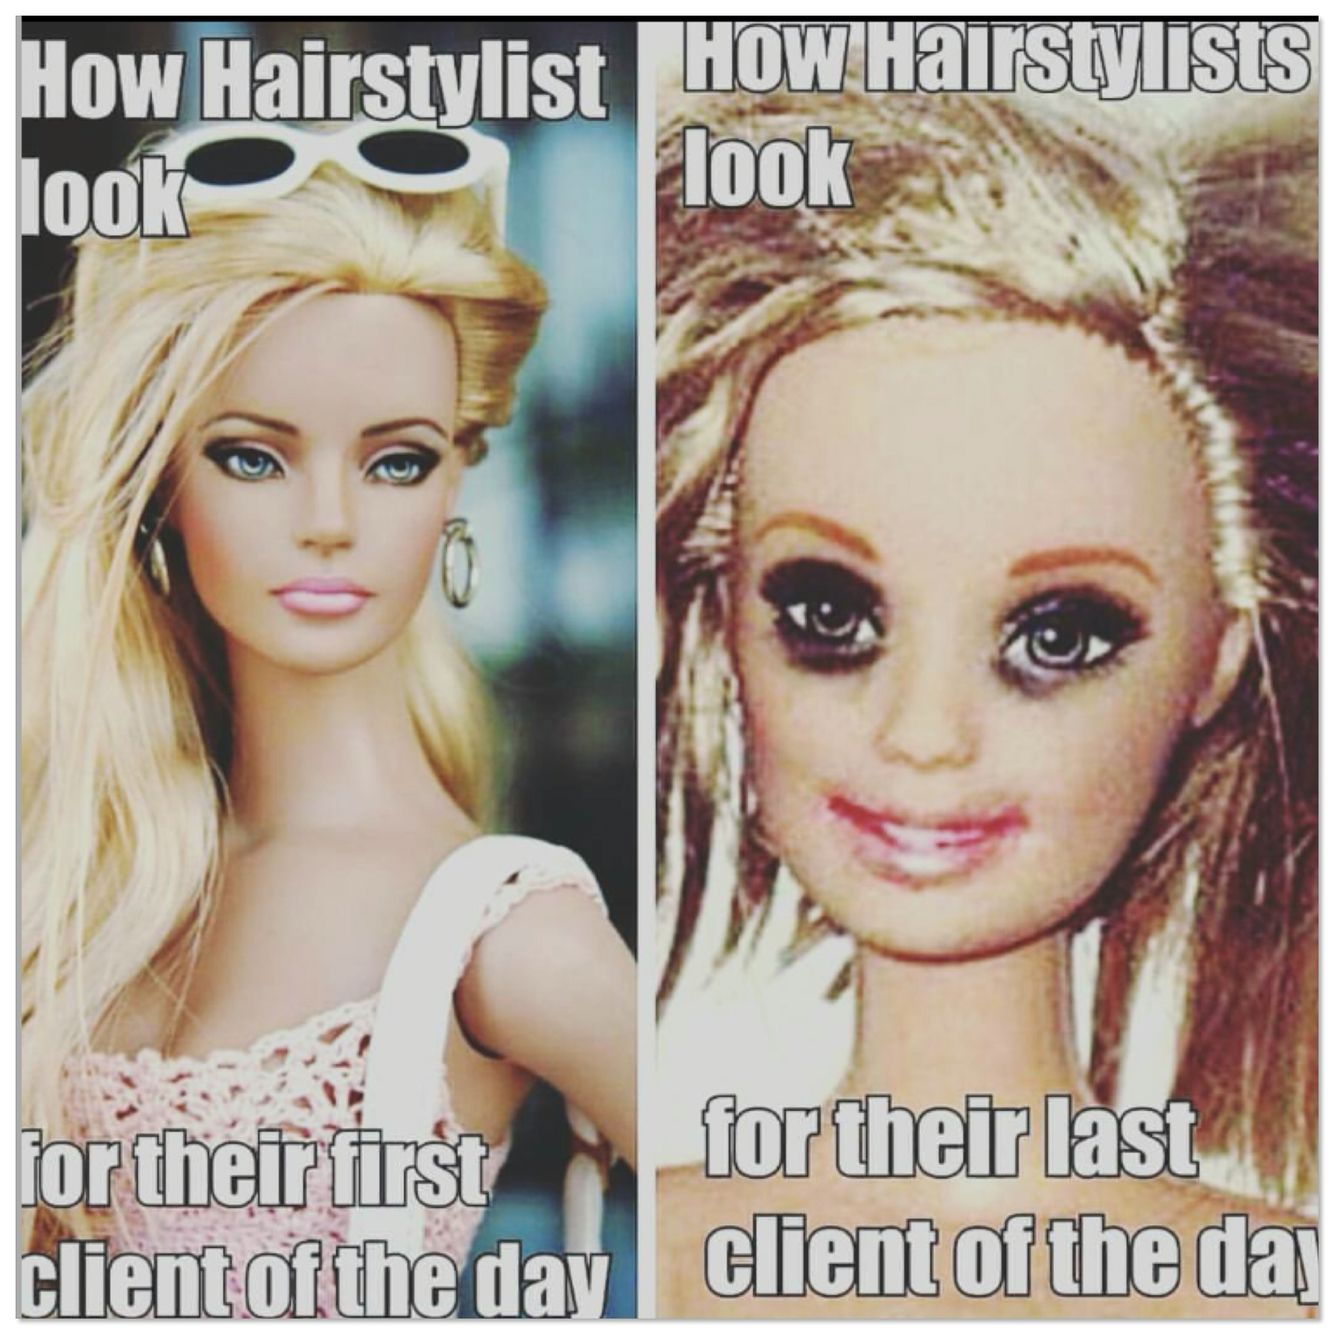 Mylife Everyday Dolledup Messedup Muckedup Barbie Barbiedoll Makeup Polished Disaster Hairstylist Hairstylist Humor Hair Stylist Life Stylist Humor